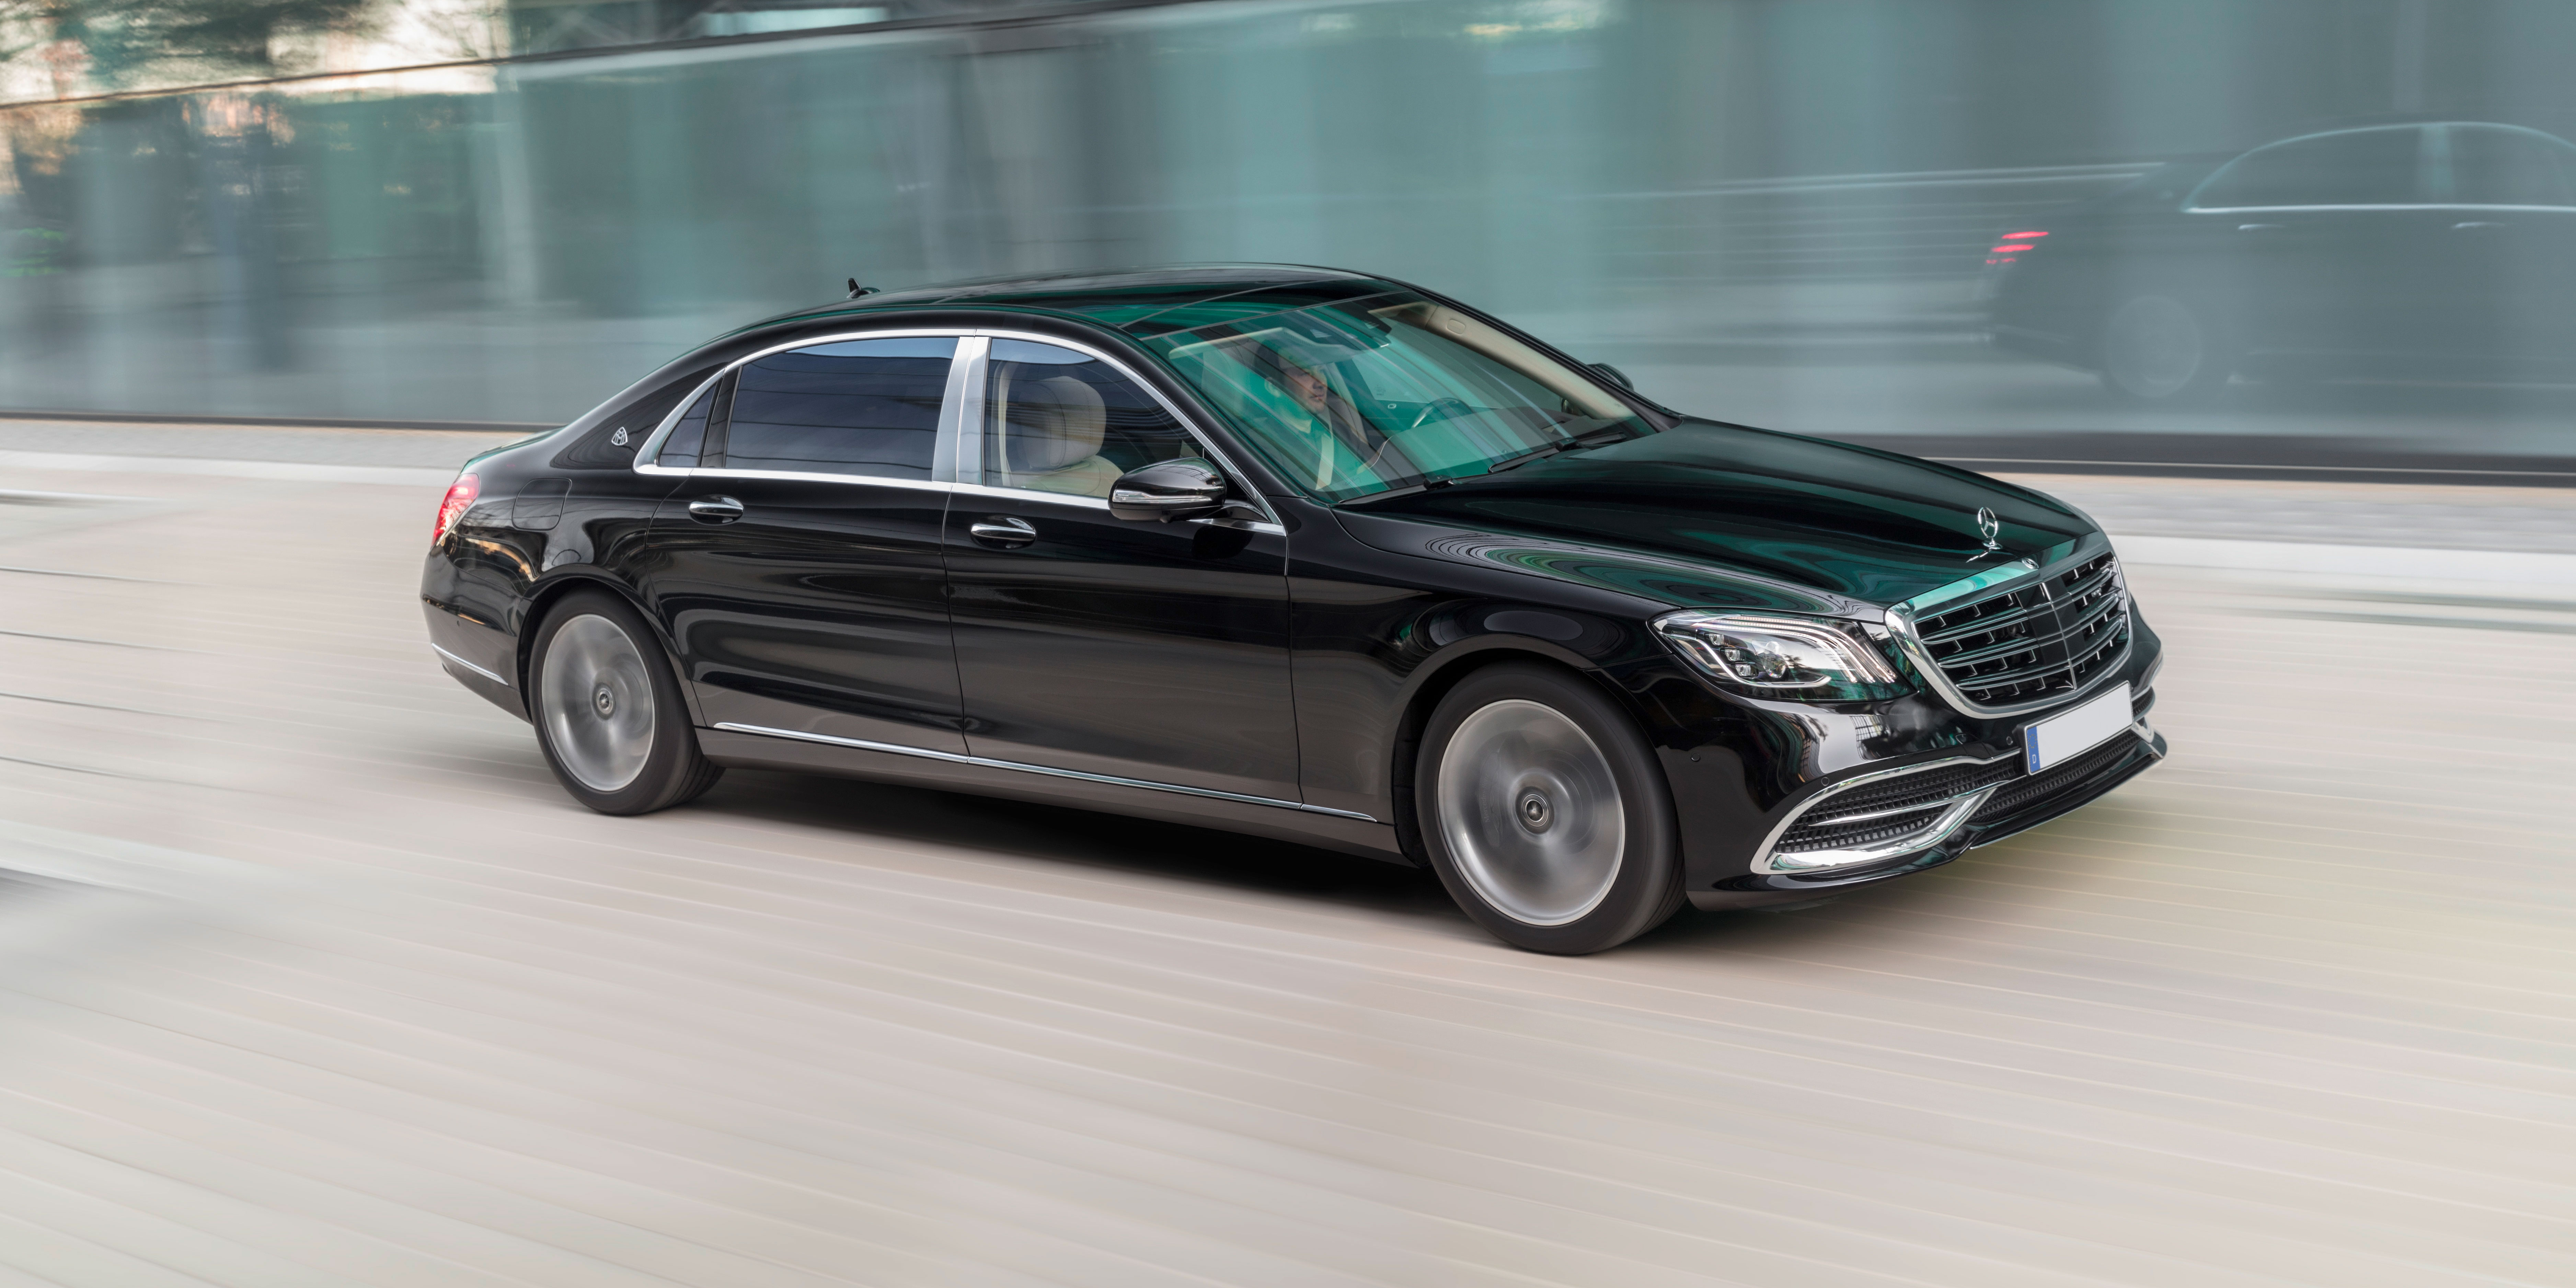 Mercedes Maybach S Class Review 2021 Carwow